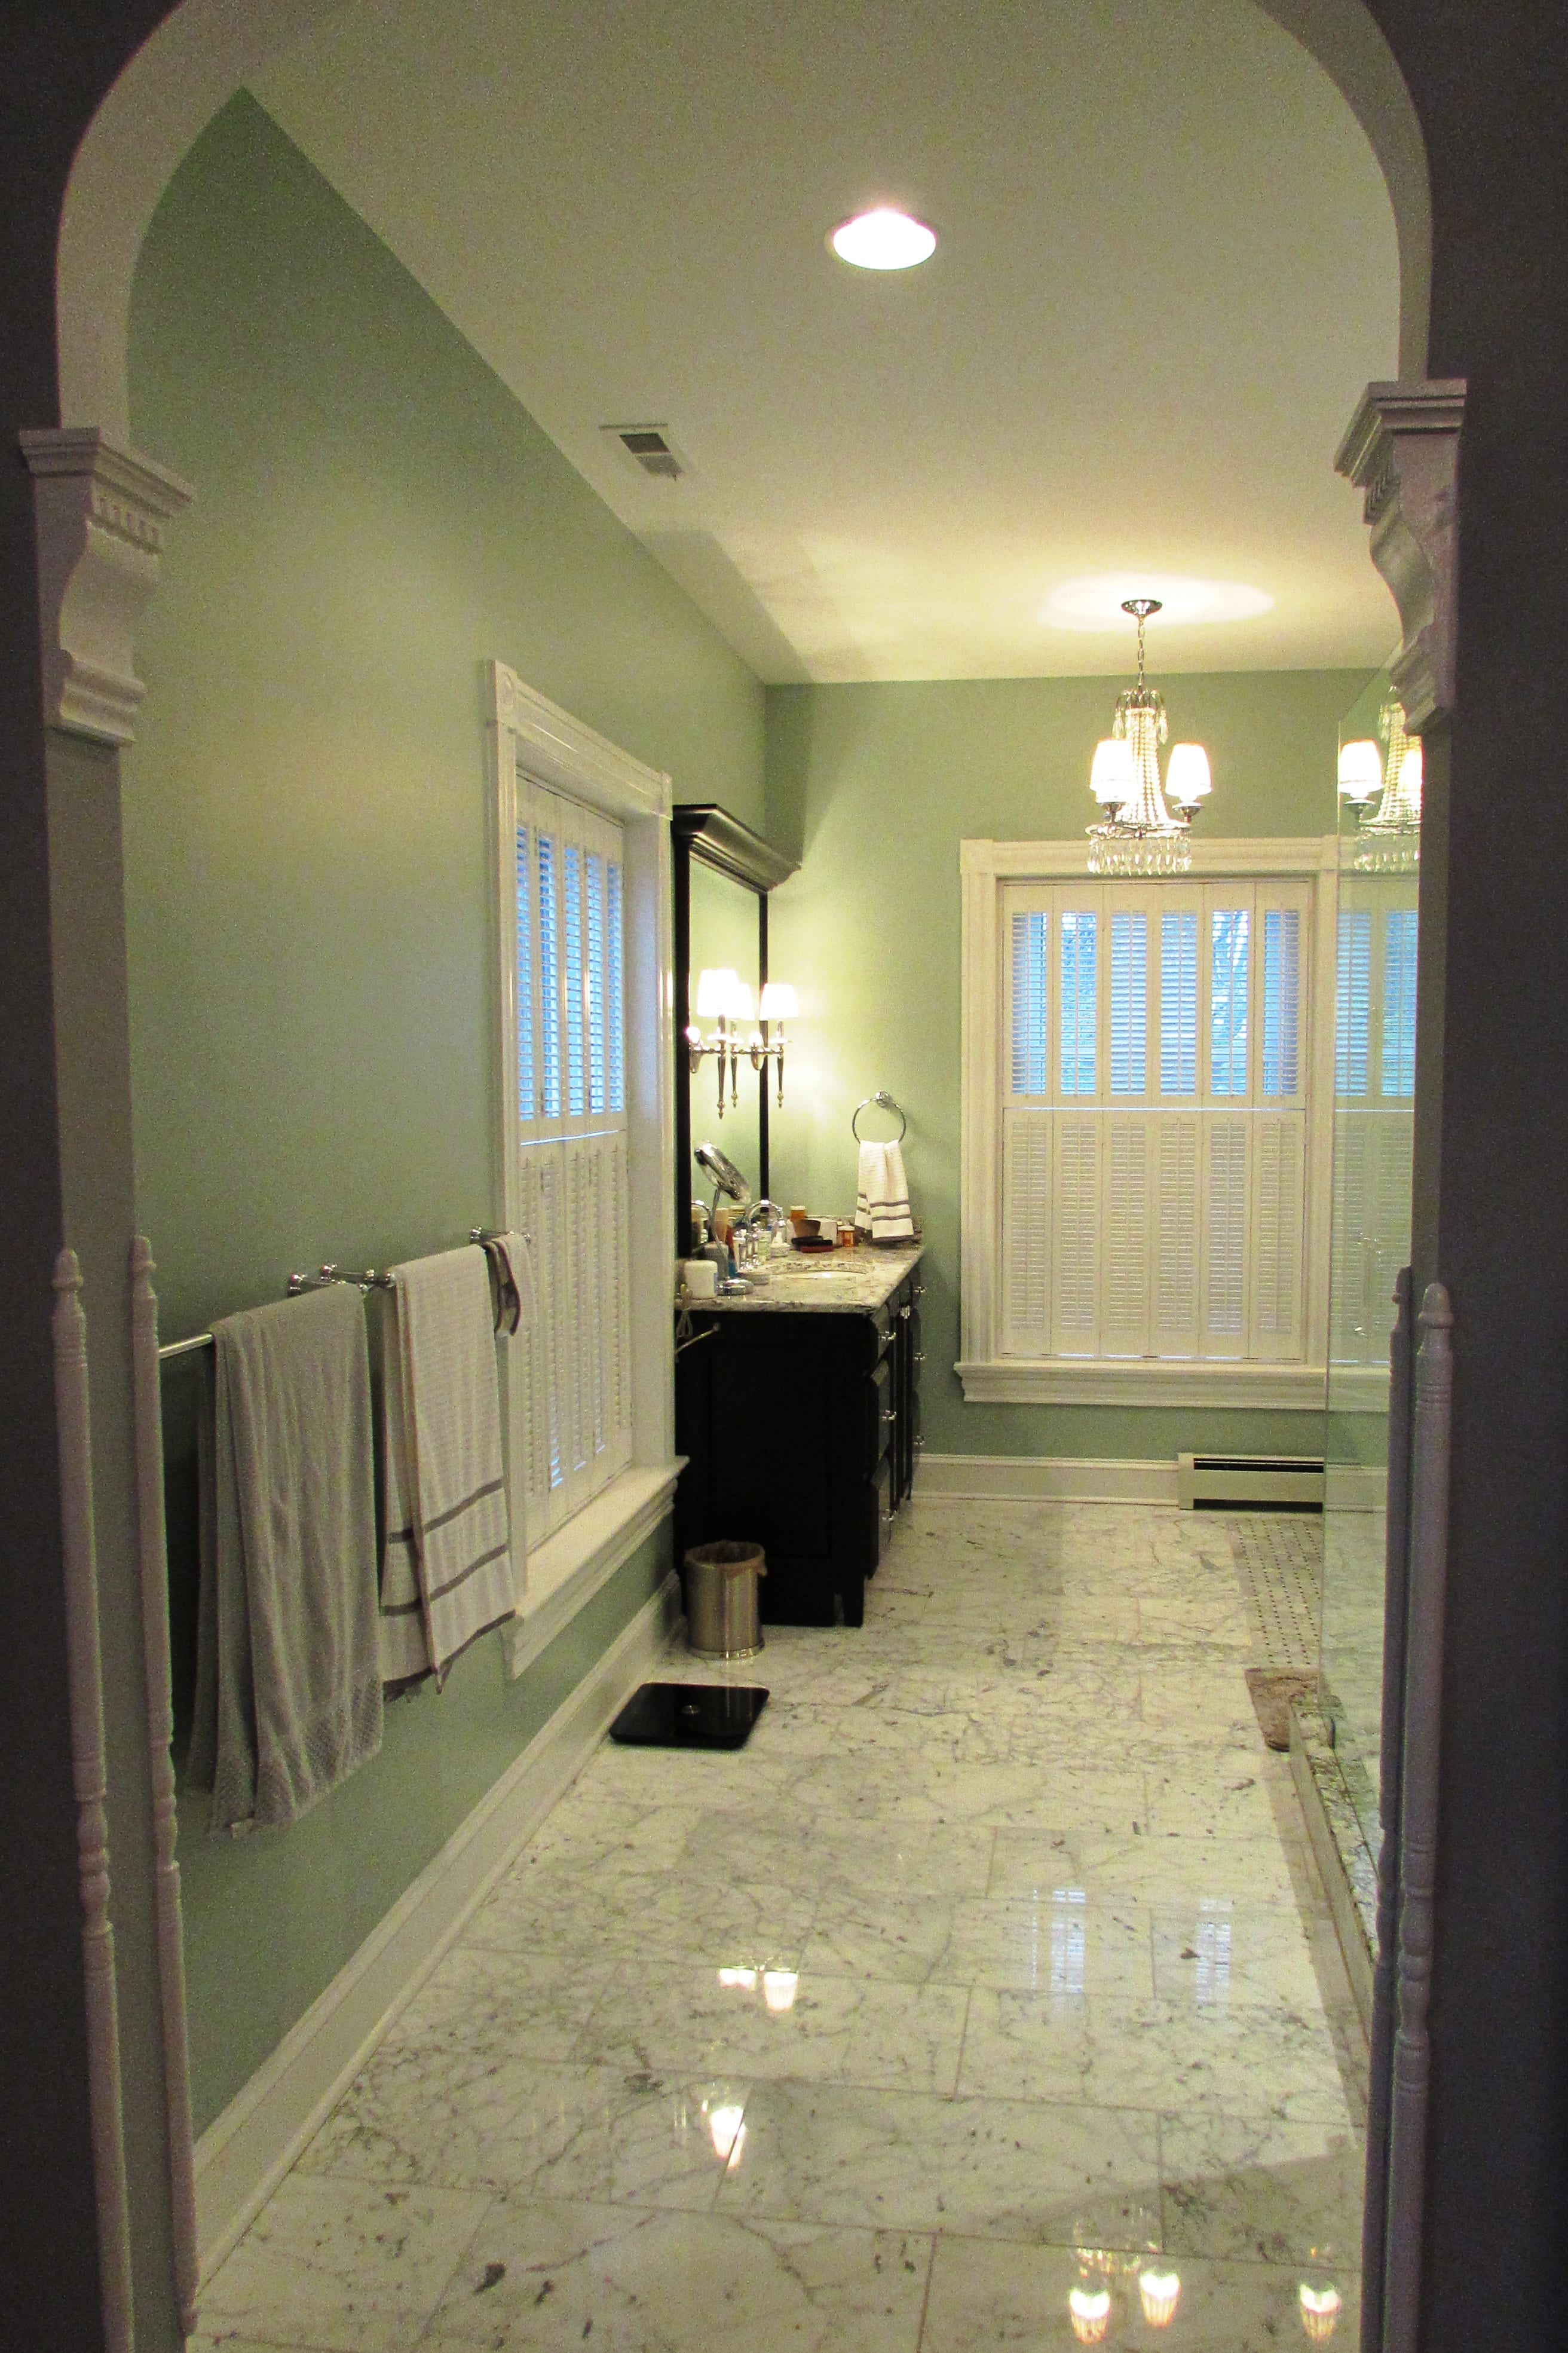 Downtown Frederick master bathroom remodel - Talon ...